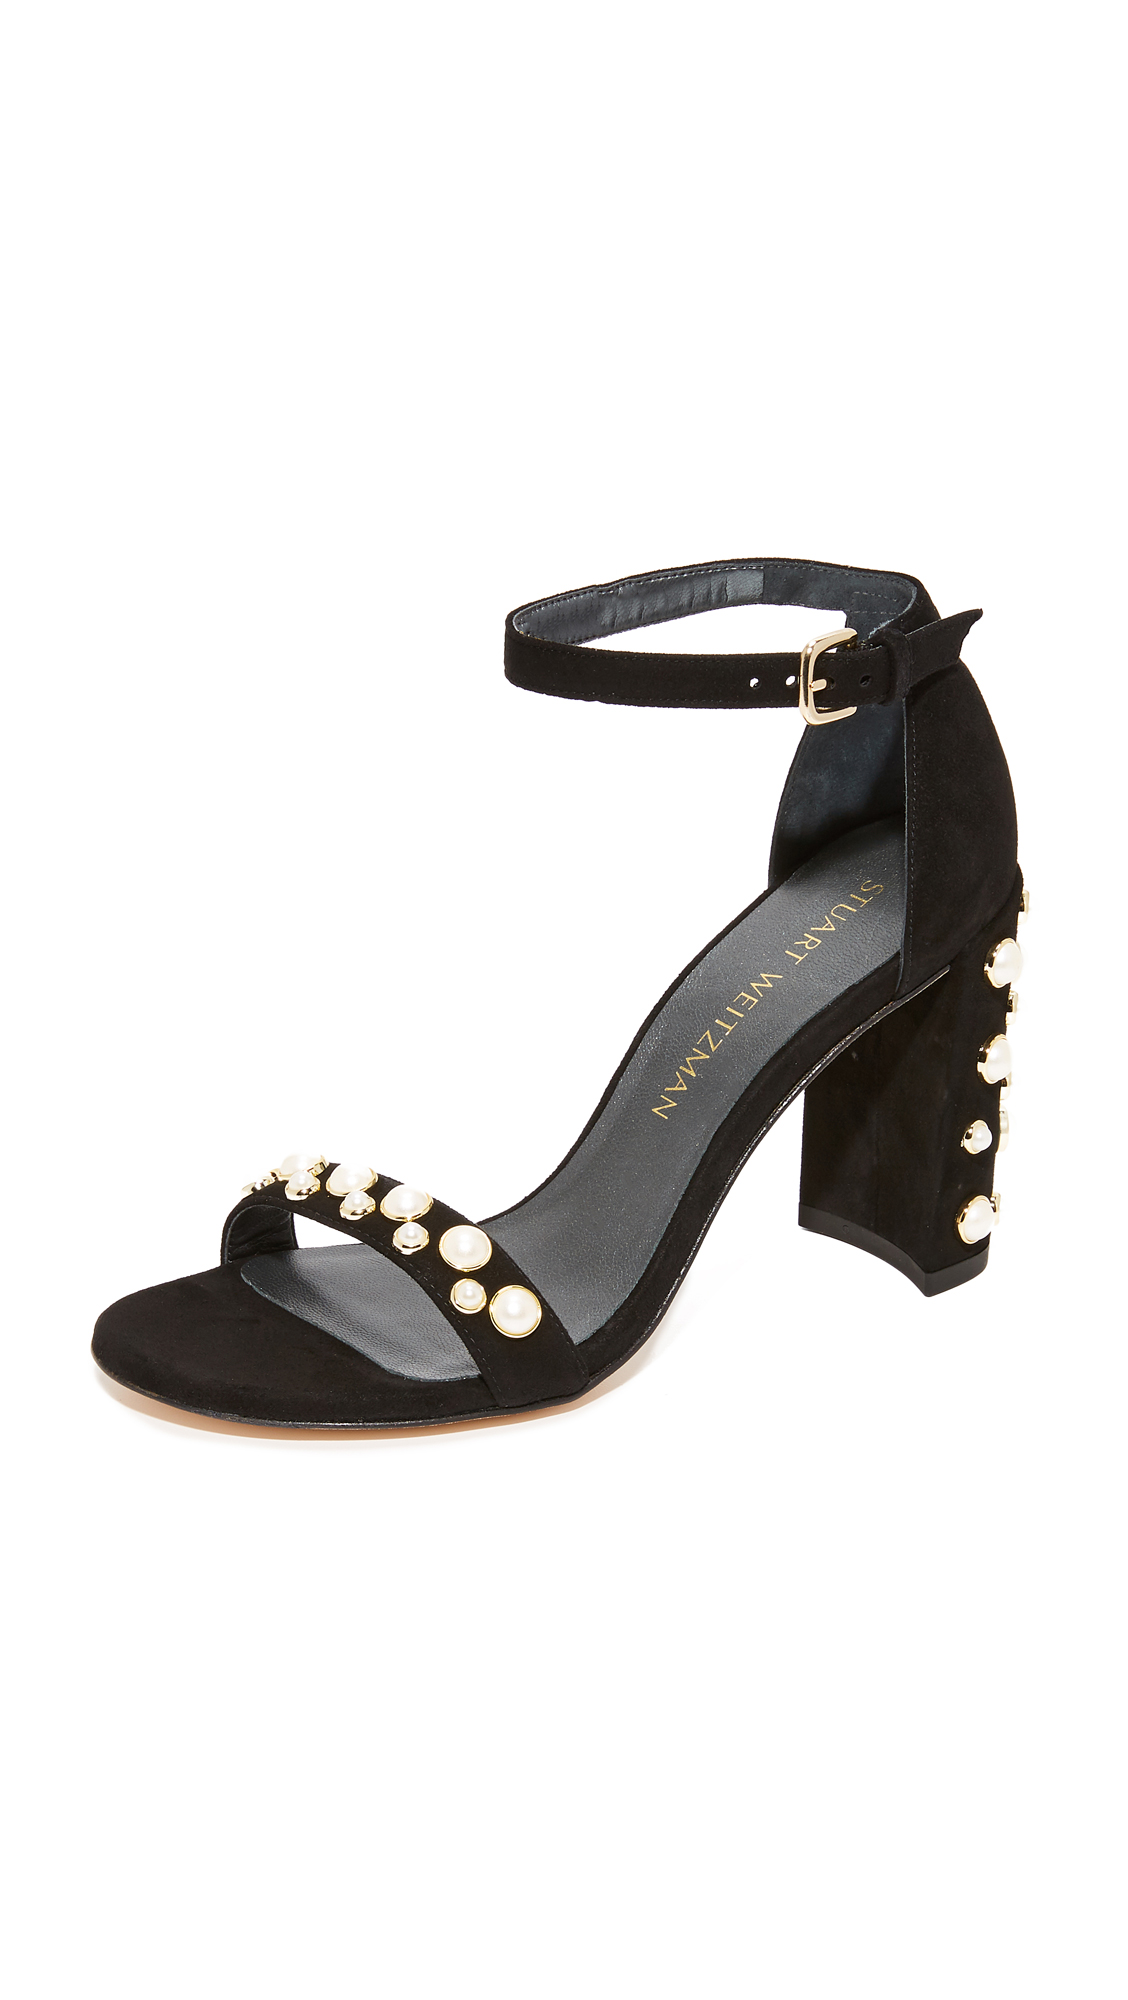 Stuart Weitzman Morepearls Sandals - Black